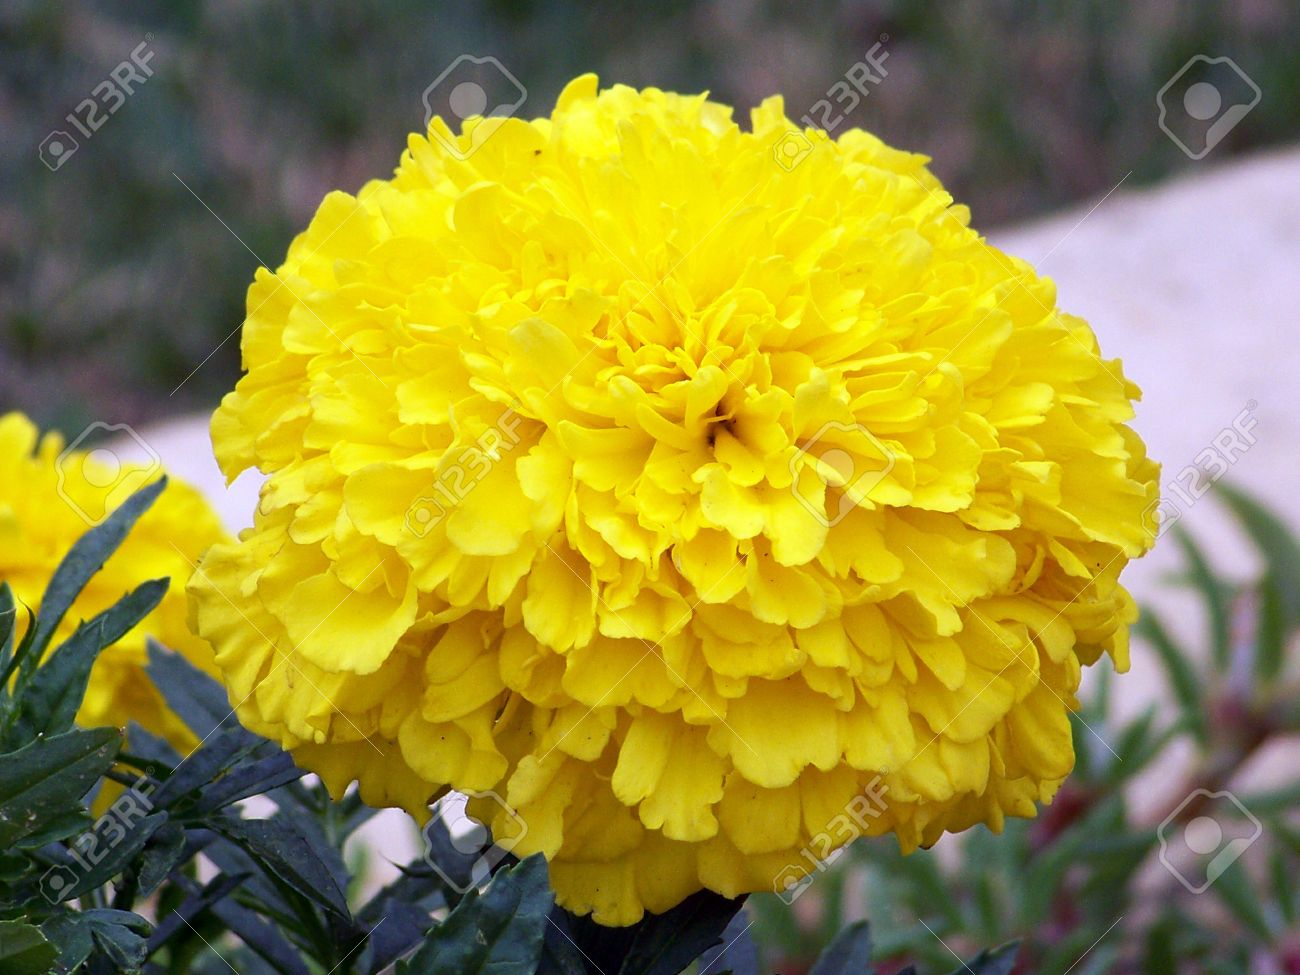 Yellow lion head flower stock photo picture and royalty free image yellow lion head flower mightylinksfo